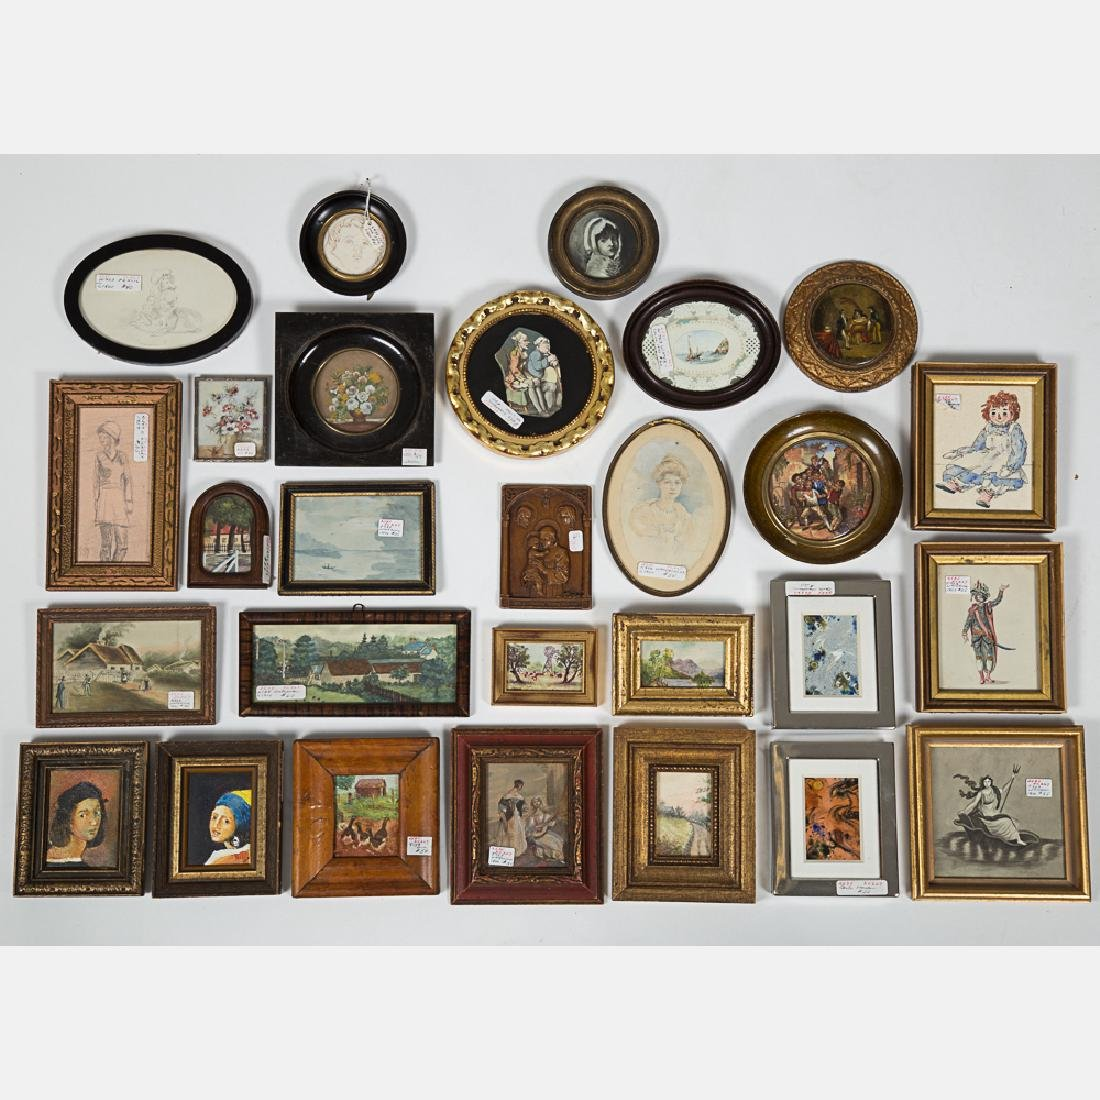 A Miscellaneous Collection of Small Framed Decorative